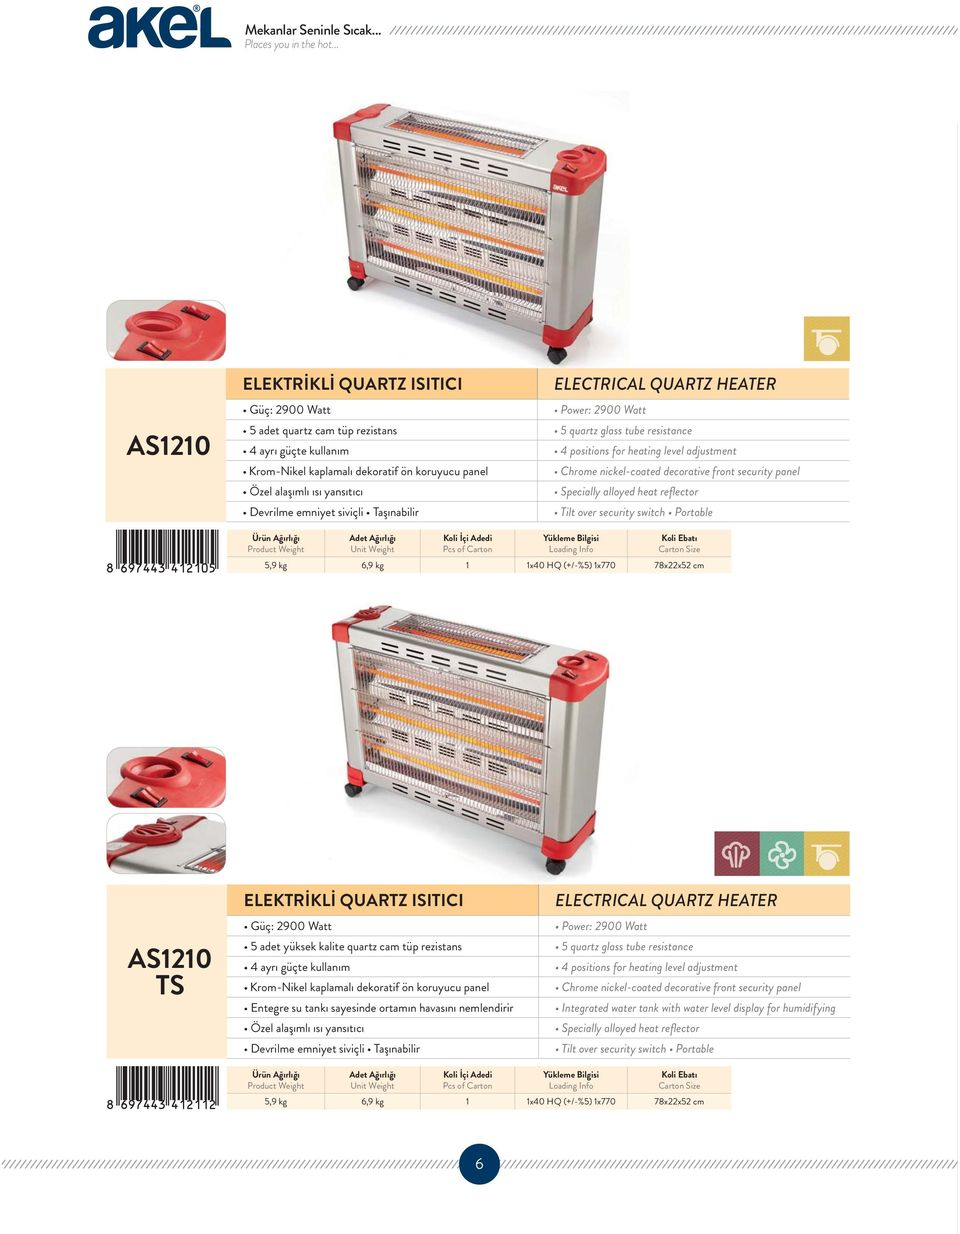 QUARTZ HEATER Pcs of Carton 1 AS1210 TS ELEKTRİKLİ